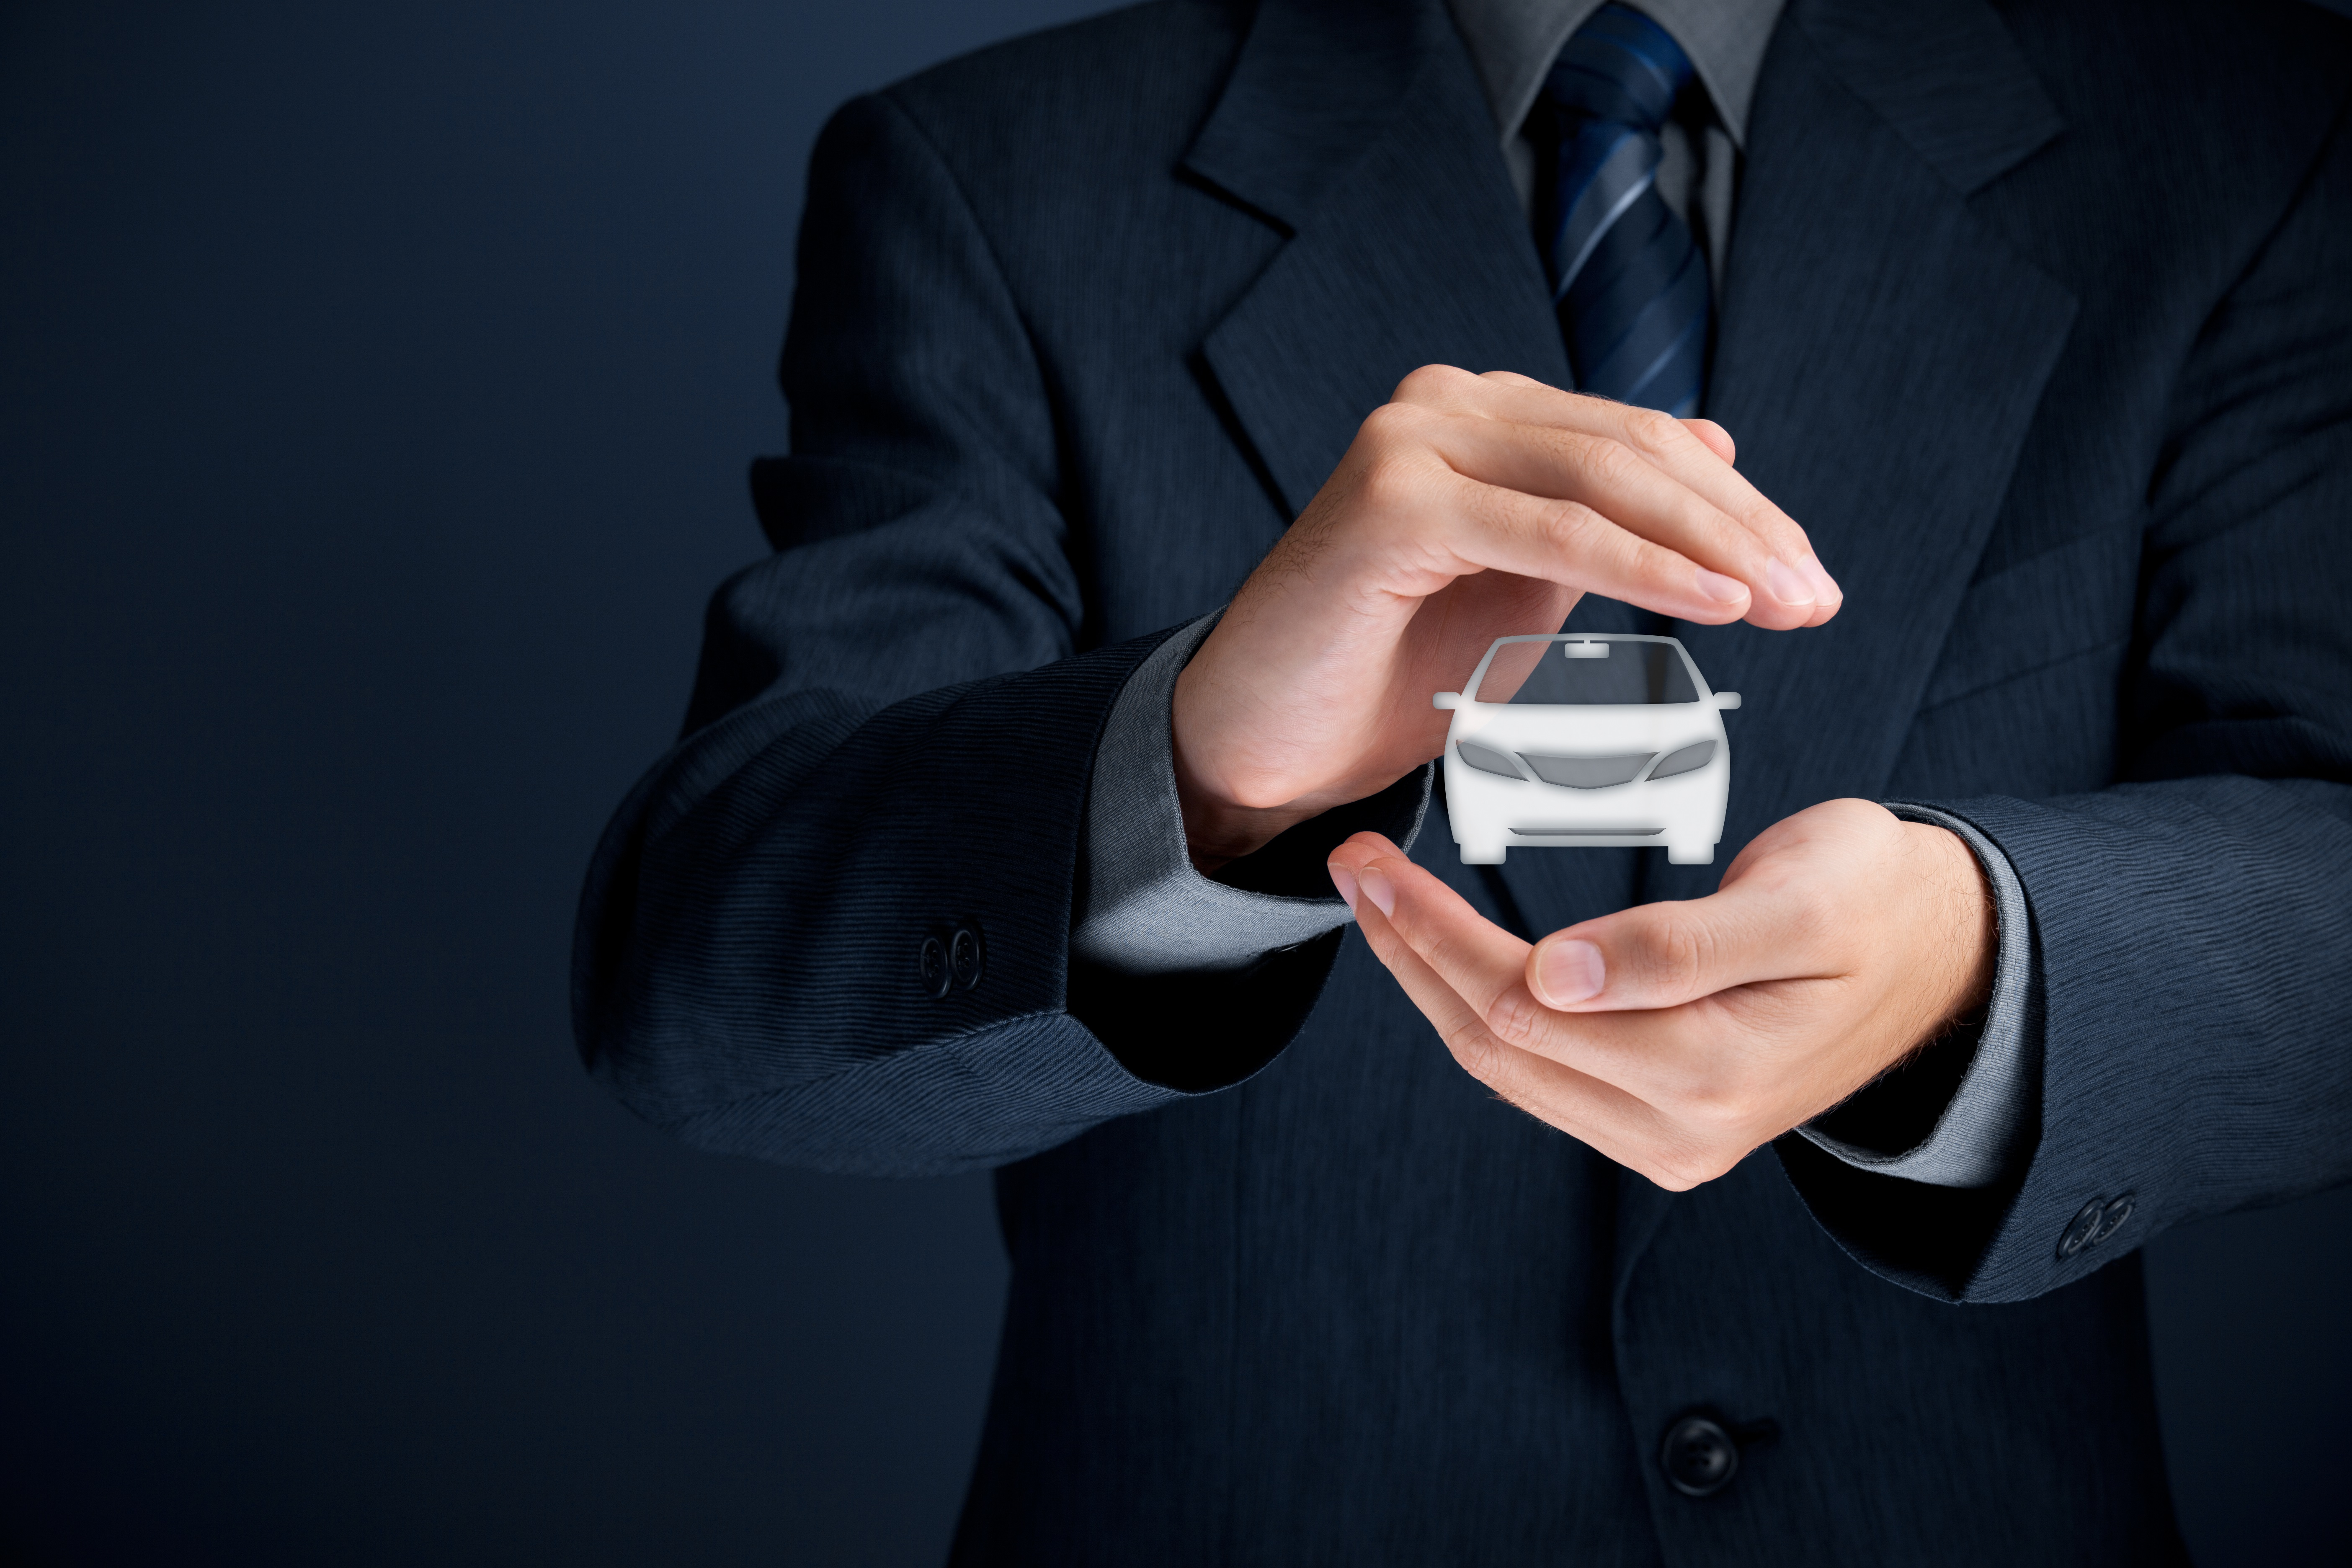 Man in suit holding miniature car